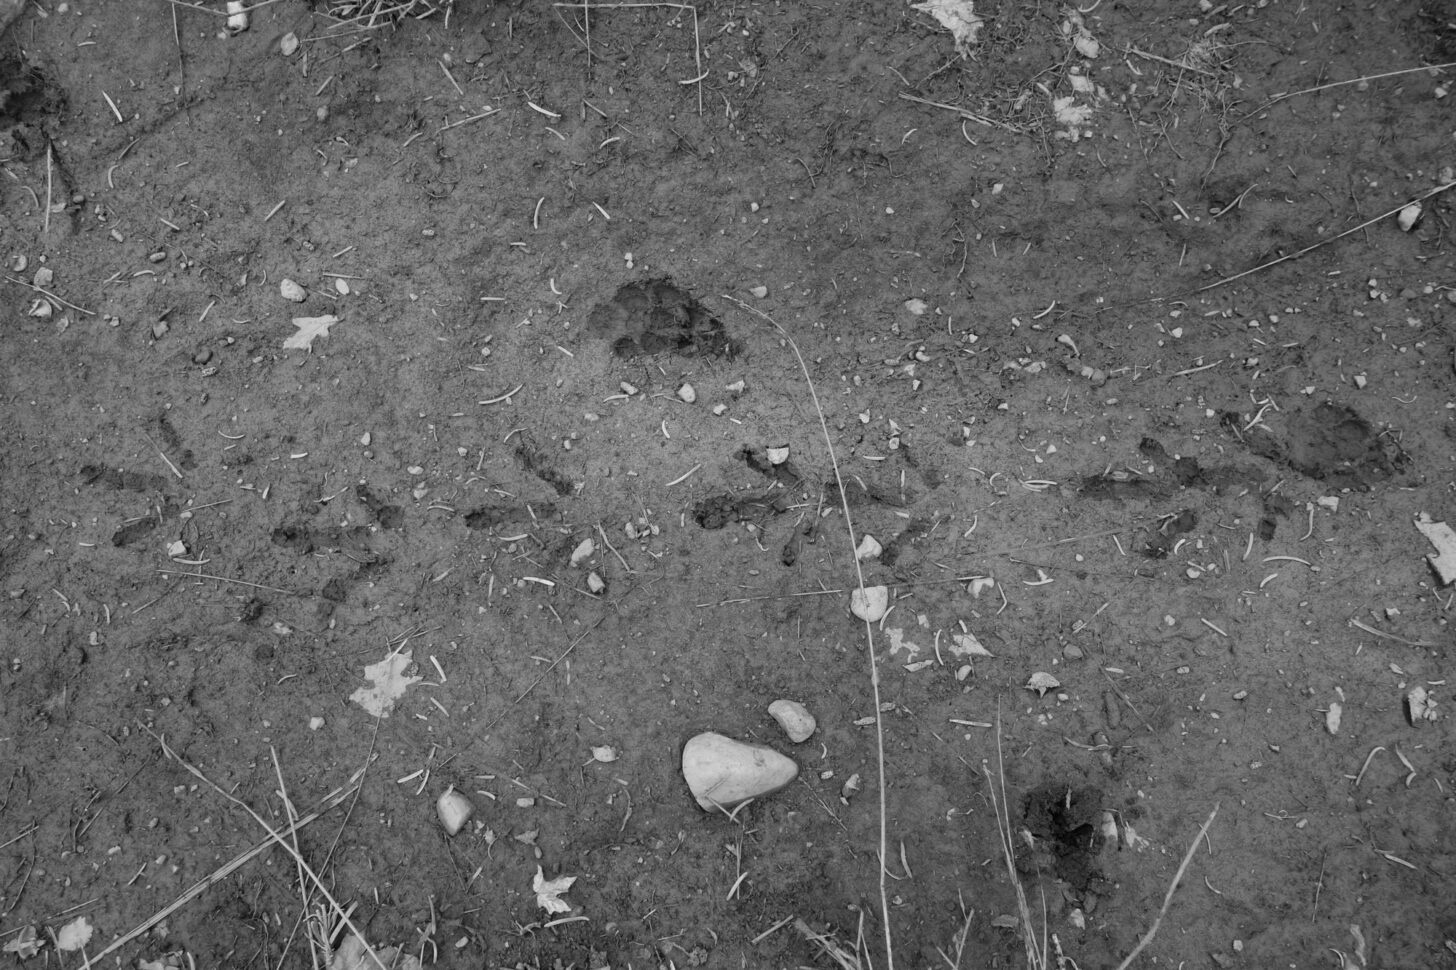 a black and white photo showing bird prints in the mud